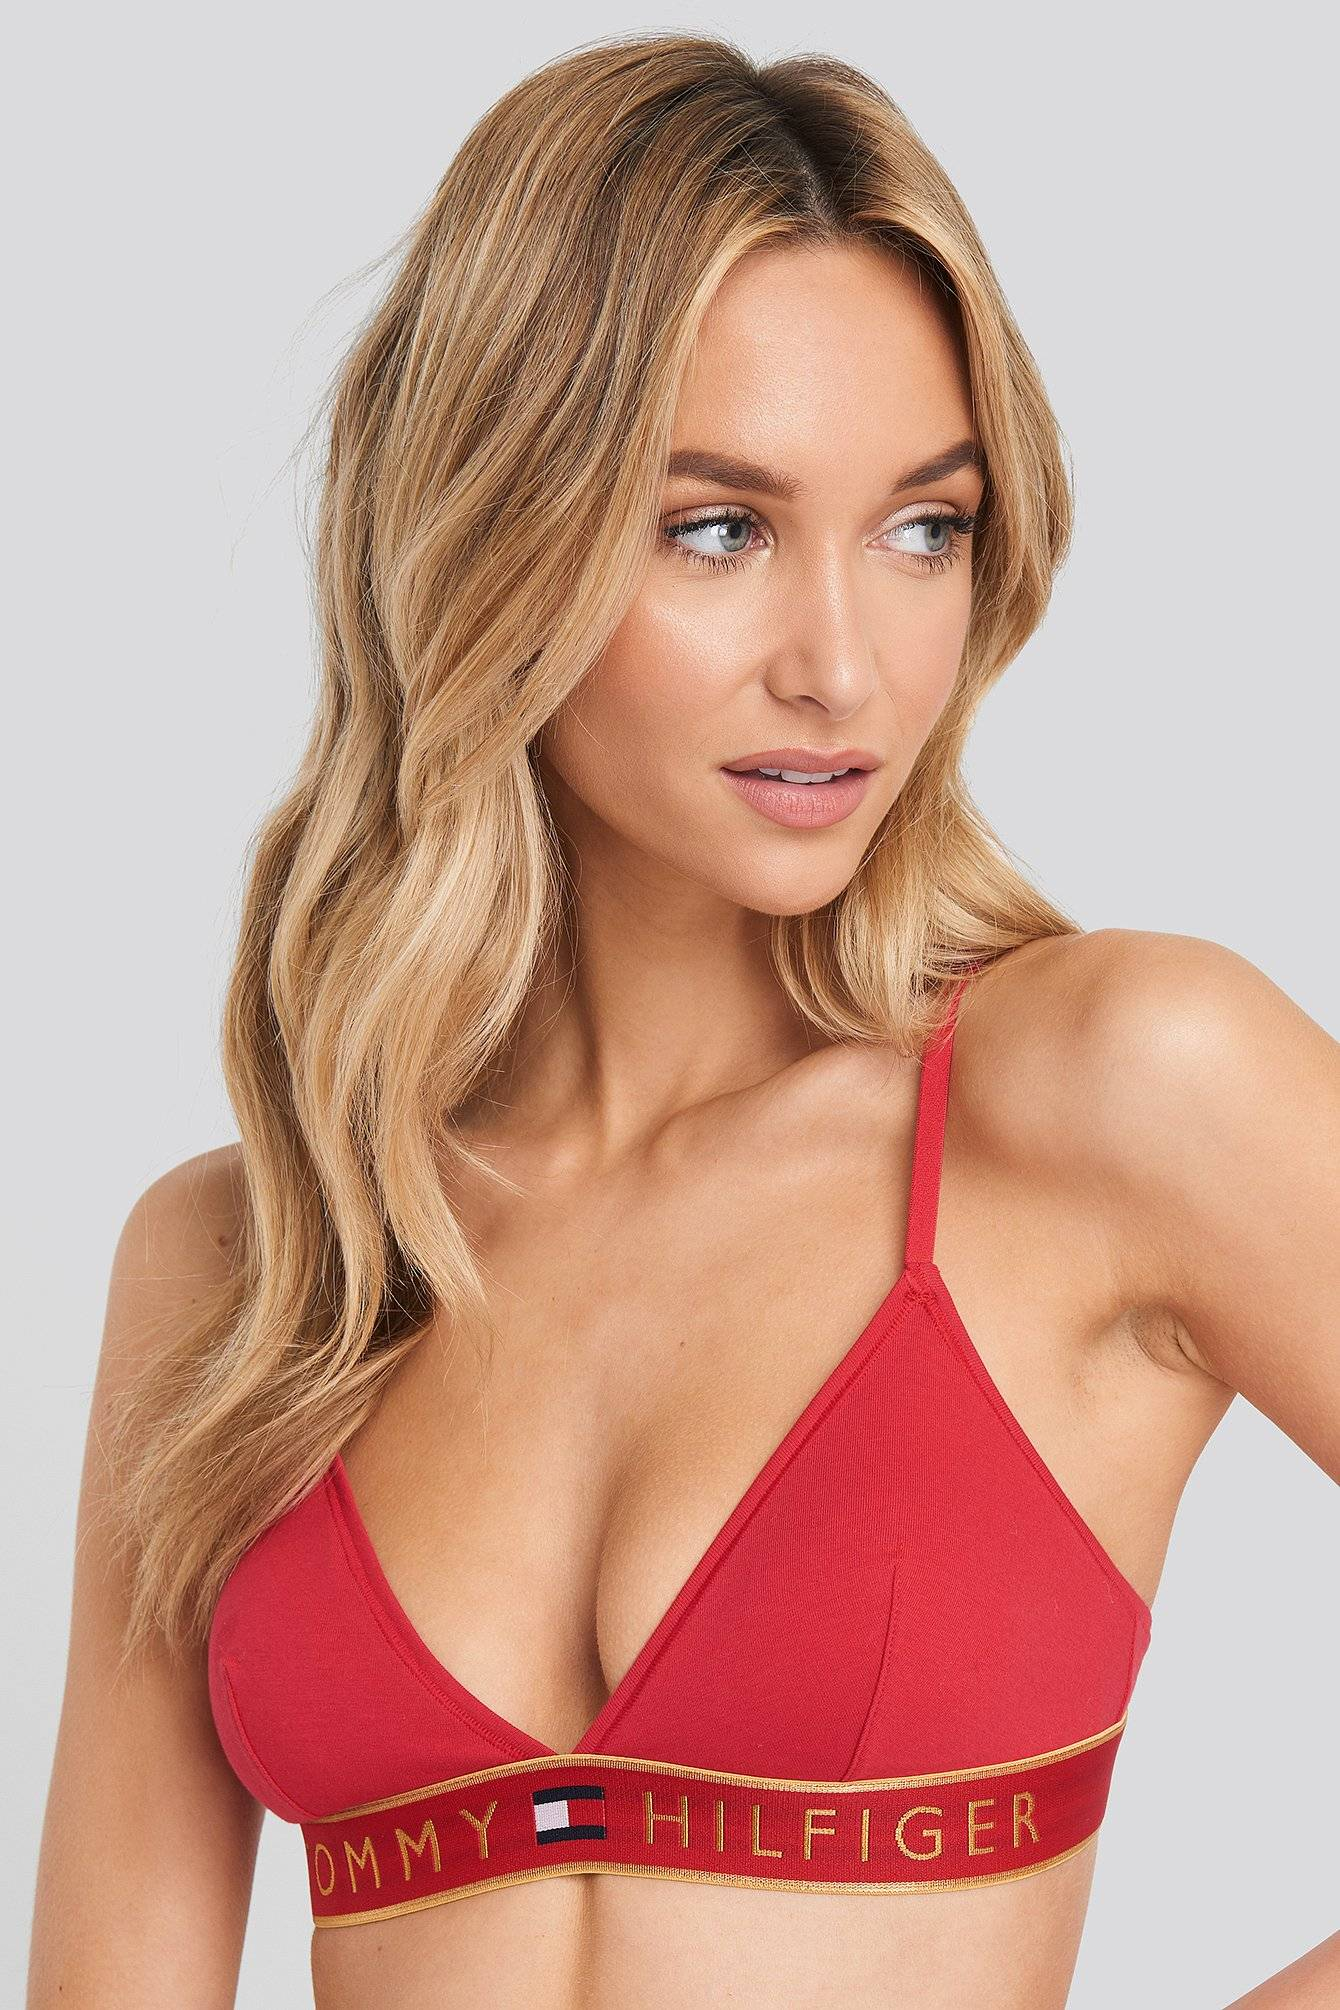 Tommy Hilfiger Original Cotton Triangle Bra - Red  - Size: Small